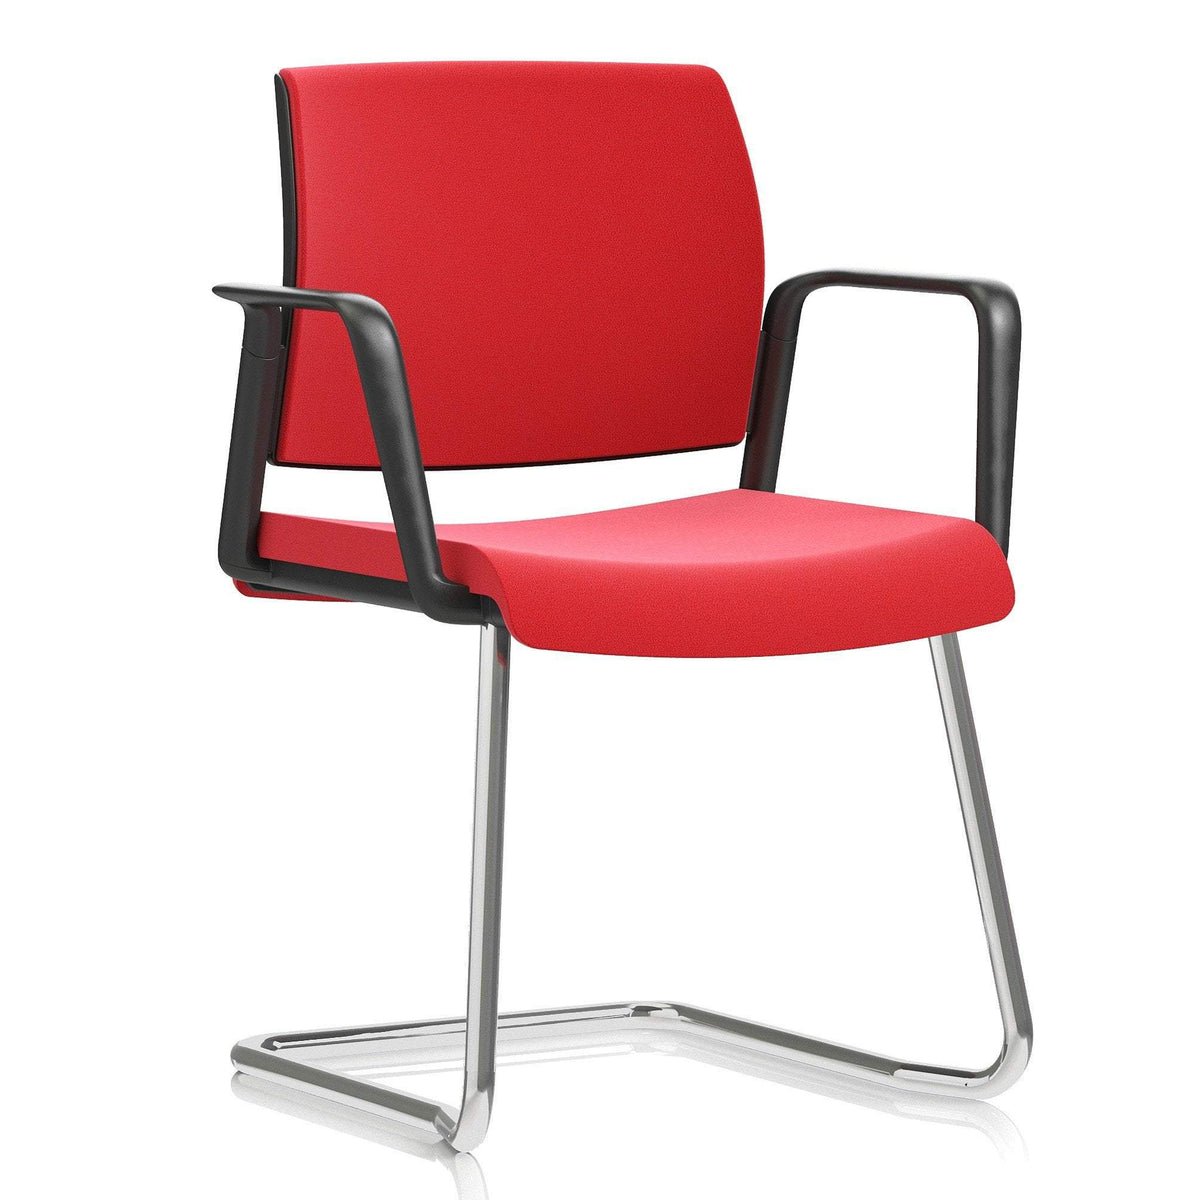 conference chair Cantilever Frame / With Arms Kindle Conference Chair Cantilever Frame / With Arms